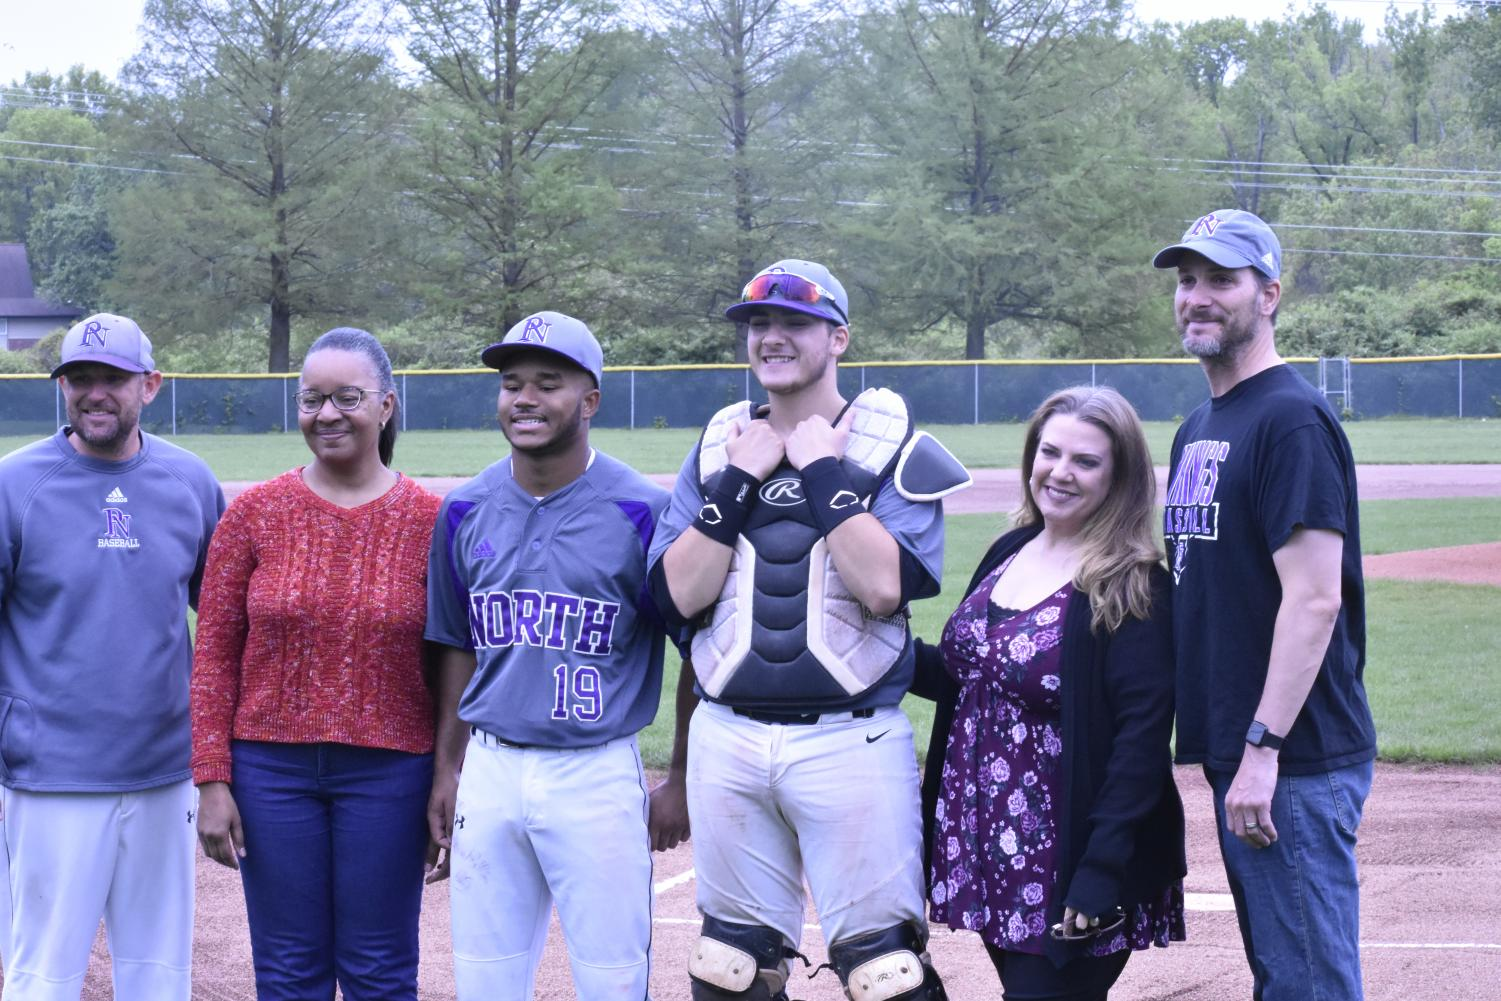 """Seniors Lucian Thibodeaux and Jacob Sigler were escorted by their parents and teamed up with varsity coach, coach Mark Reeder during senior night for varsity baseball on May 3, 2019 at 4:15 p.m. at North's home field. """"Senior season was really good; it was nice to know my teammates and coaches have high expectations of me,"""" said senior Lucian Thibodeaux."""